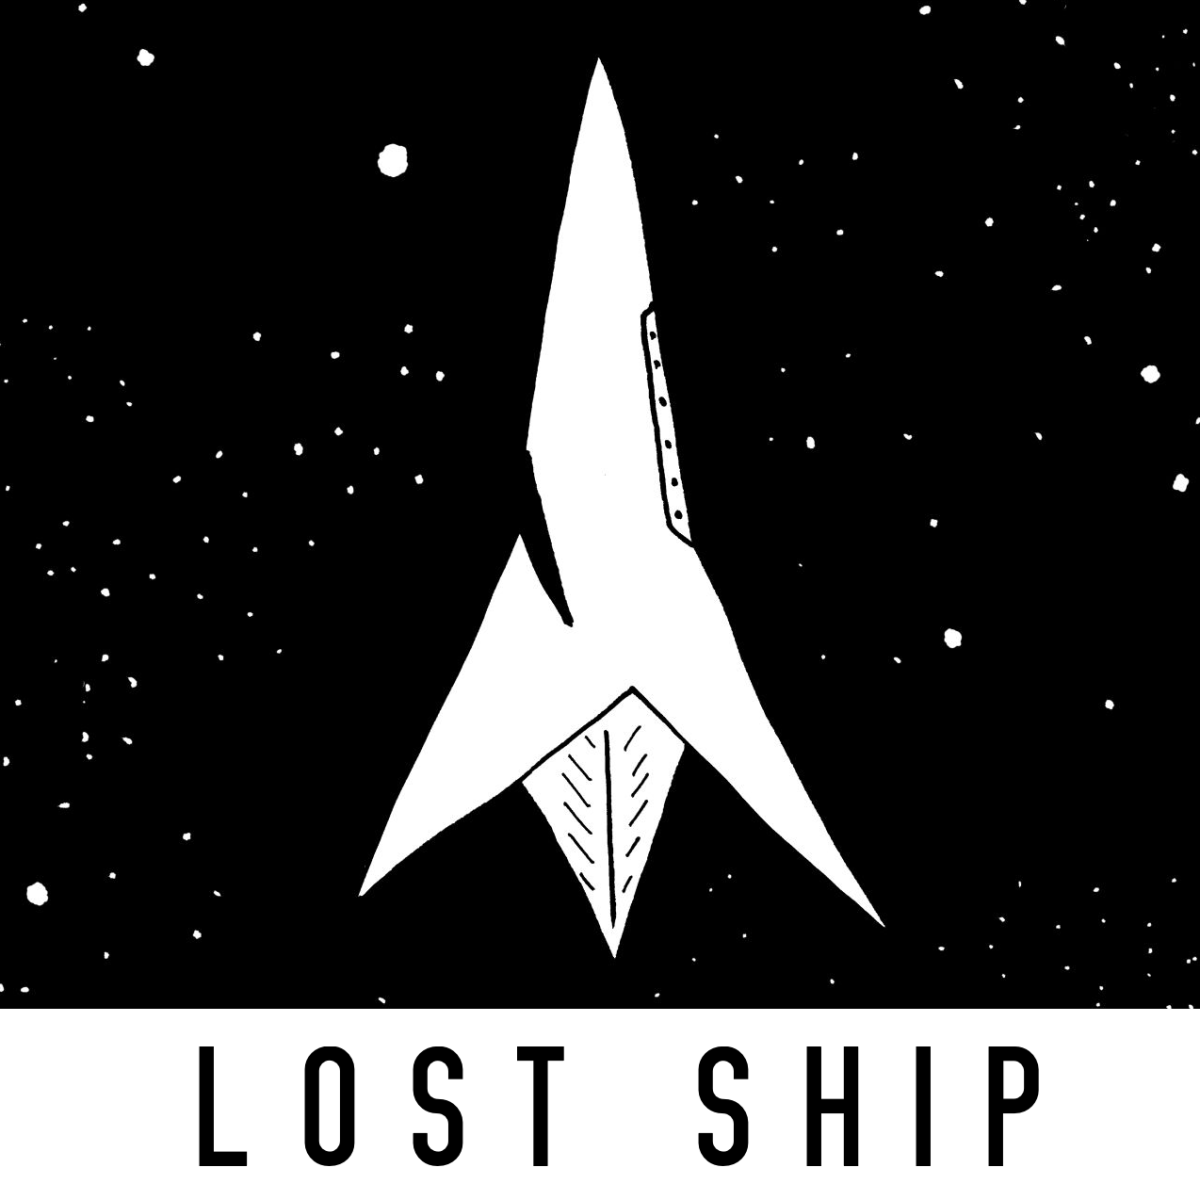 Launching Lost Ship